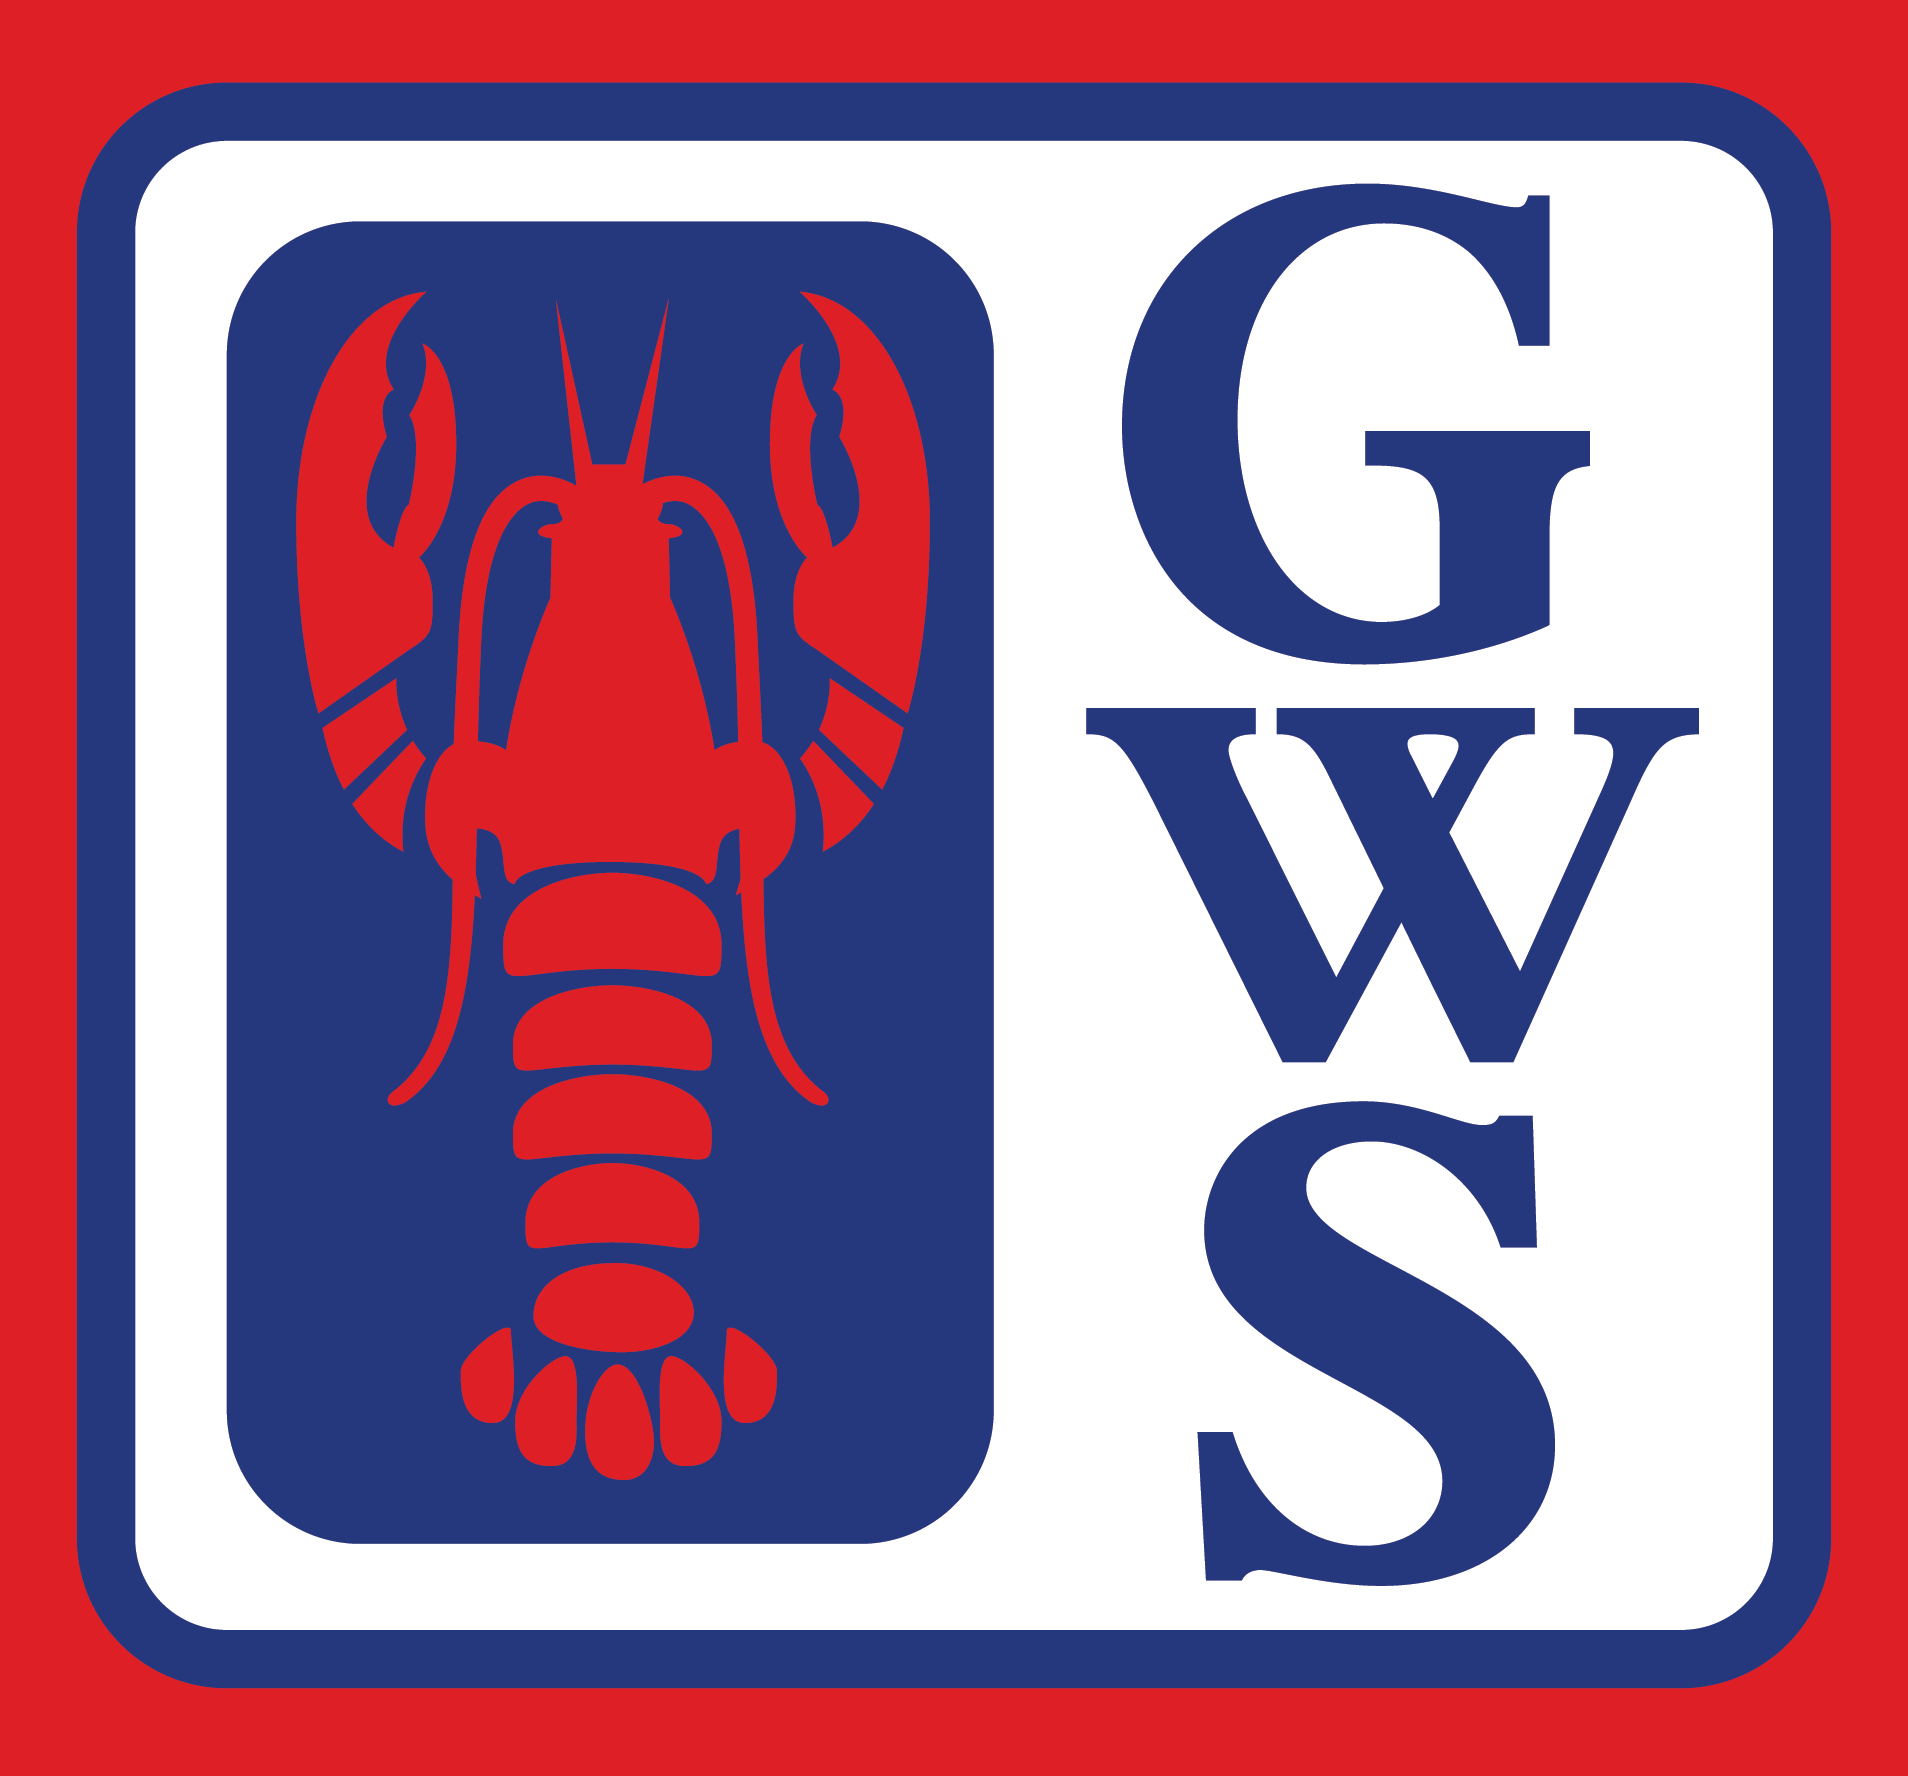 Red, white and blue Gardner's Wharf Seafood square logo with a red Lobster to the left and navy blue GWS positioned vertically to the right